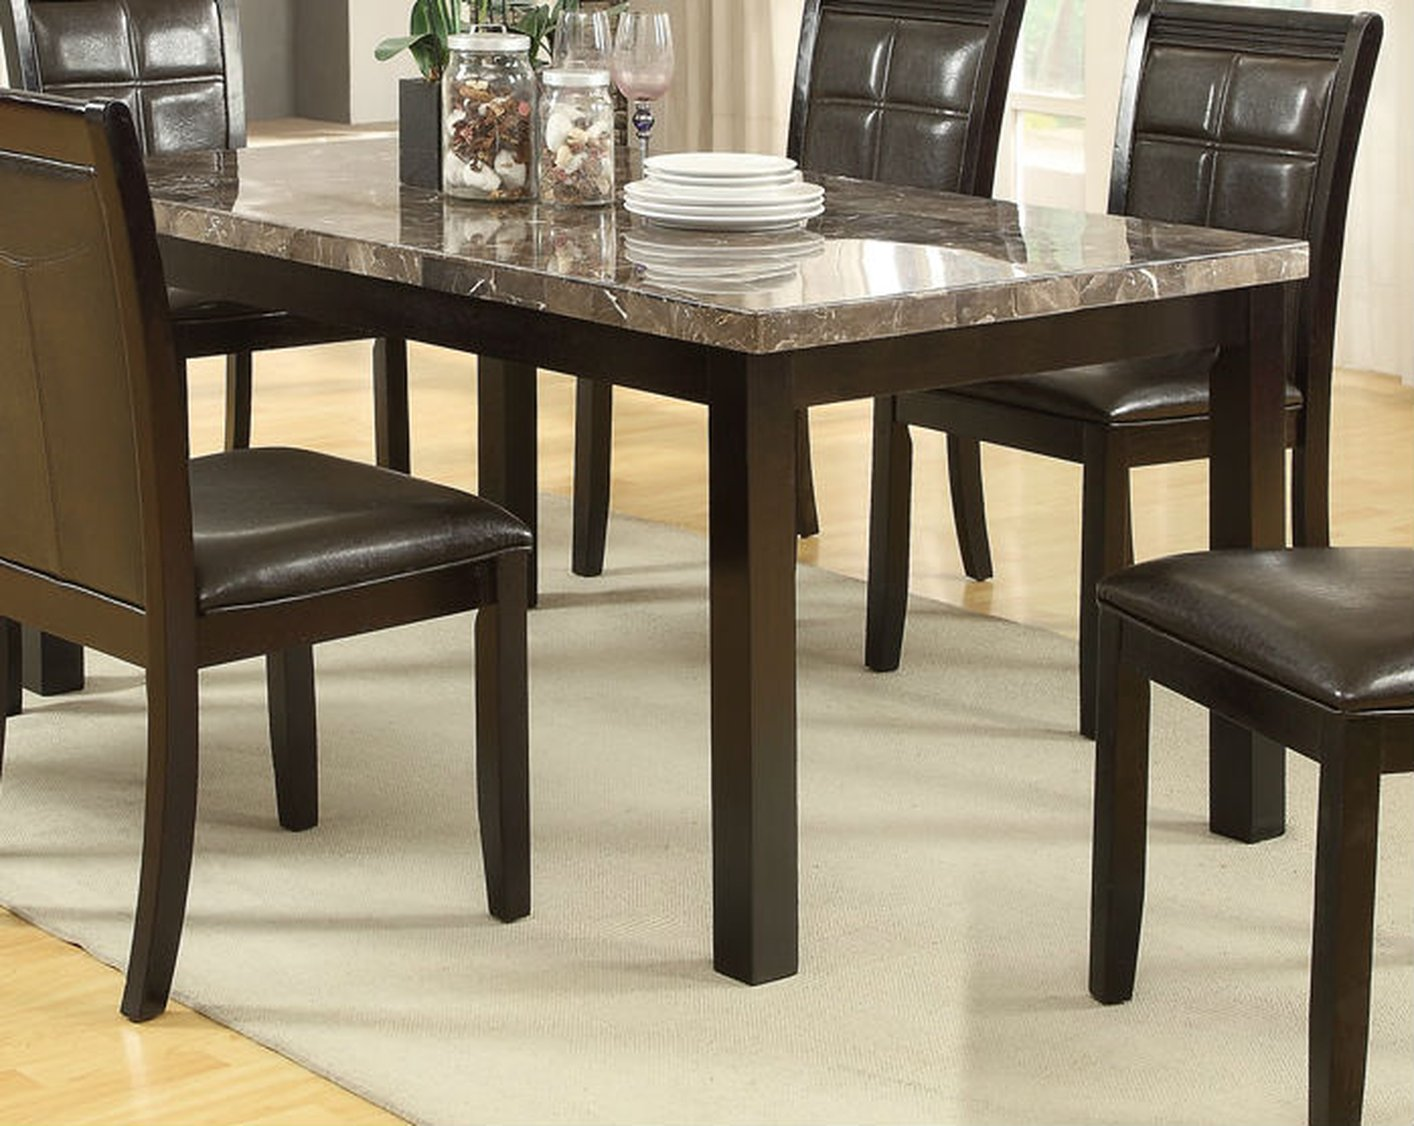 Brown Wood Dining Table StealASofa Furniture Outlet Los Angeles CA - Kitchen table los angeles